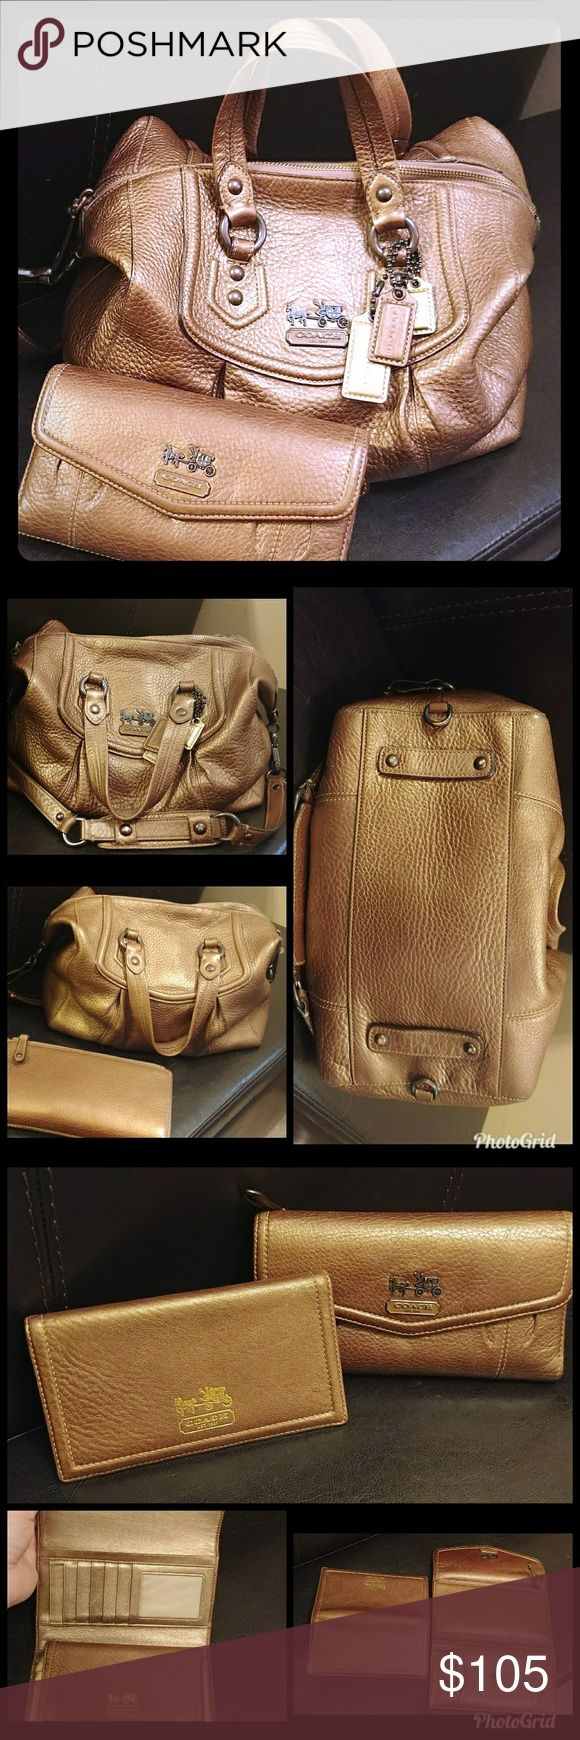 """Coach Madison Audrey bronze bag w/ matching wallet VGUC beautiful bronze leather set! Minor signs of wear shown in photos. All of these flaws are minor and do not effect function or beauty. Inside is pretty clean with slight discoloration, mostly along zipper. There are no tears, broken hardware, etc. The shoulder strap is removable to convert to satchel or you can fasten the shoulder strap through the loops on the bottom of the purse. Three hangtags are included. ☺ approx meas: 13x11""""…"""